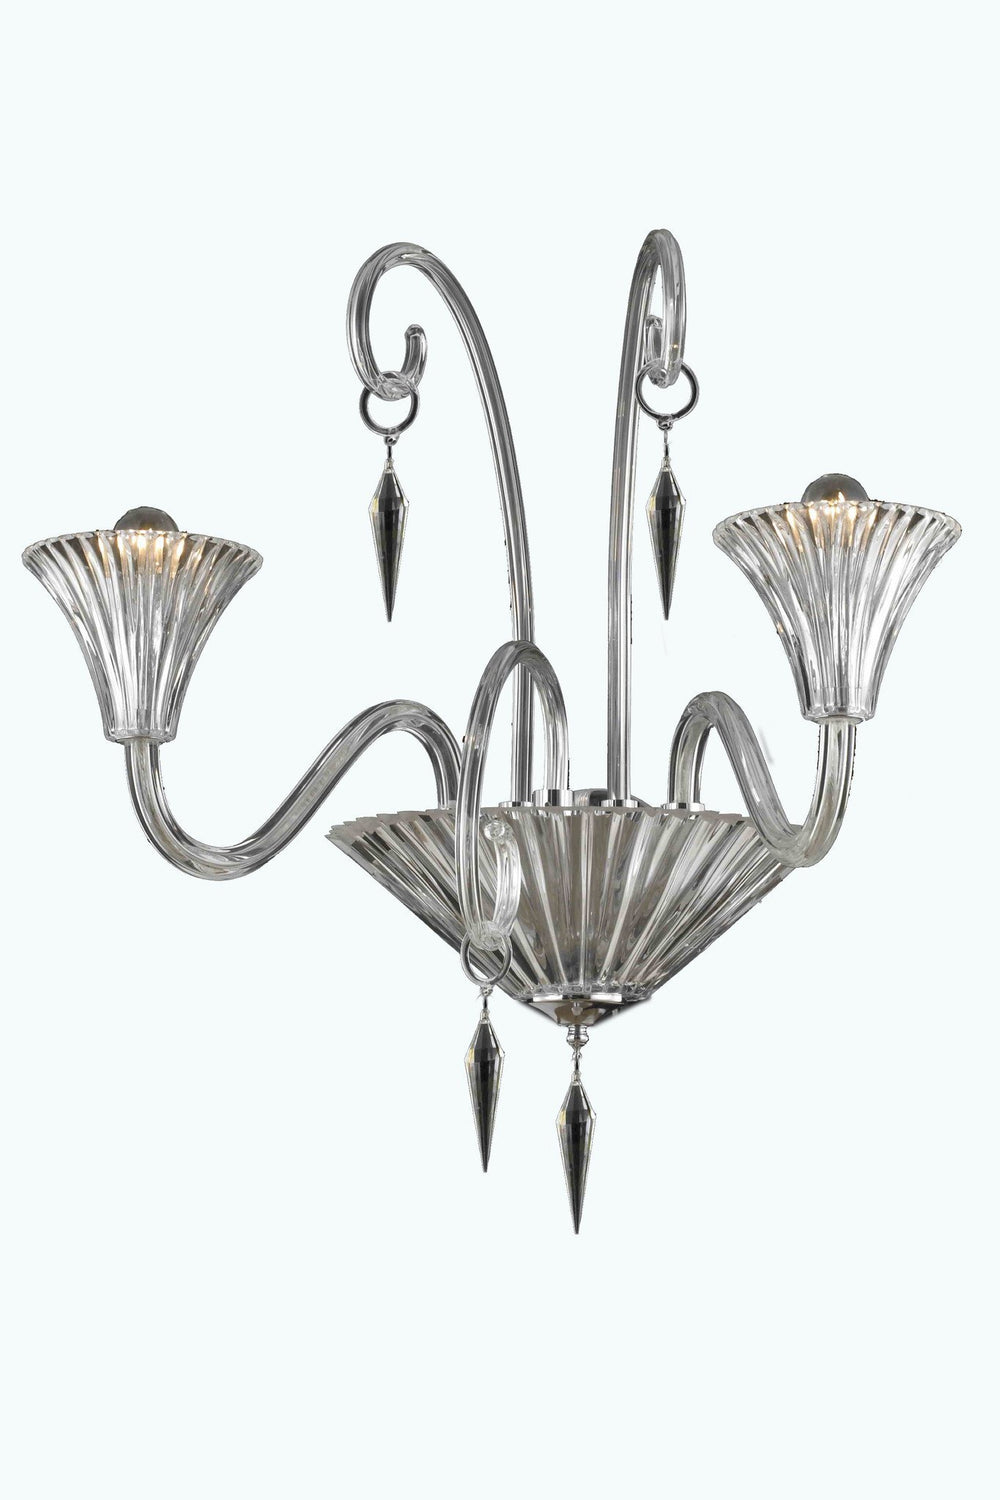 Elegant Lighting 8802W24 Symphony 2 Light Wall Sconce